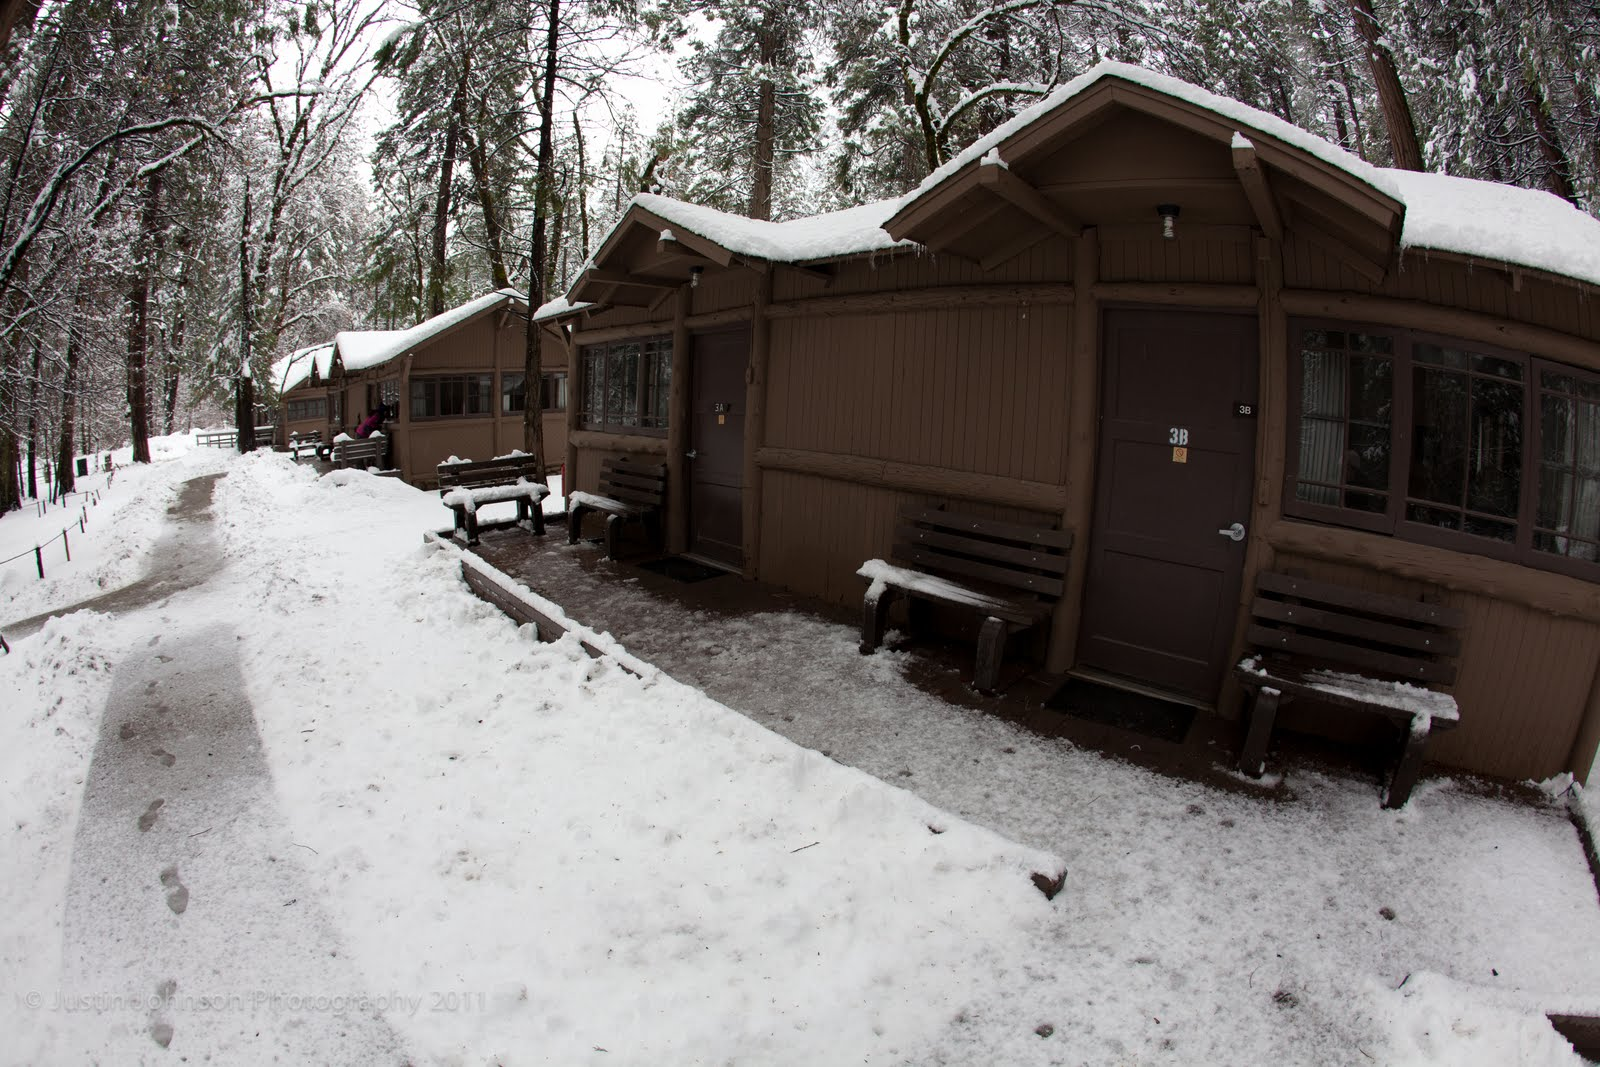 Yosemite Lodging And Chapel You Can Call Me J